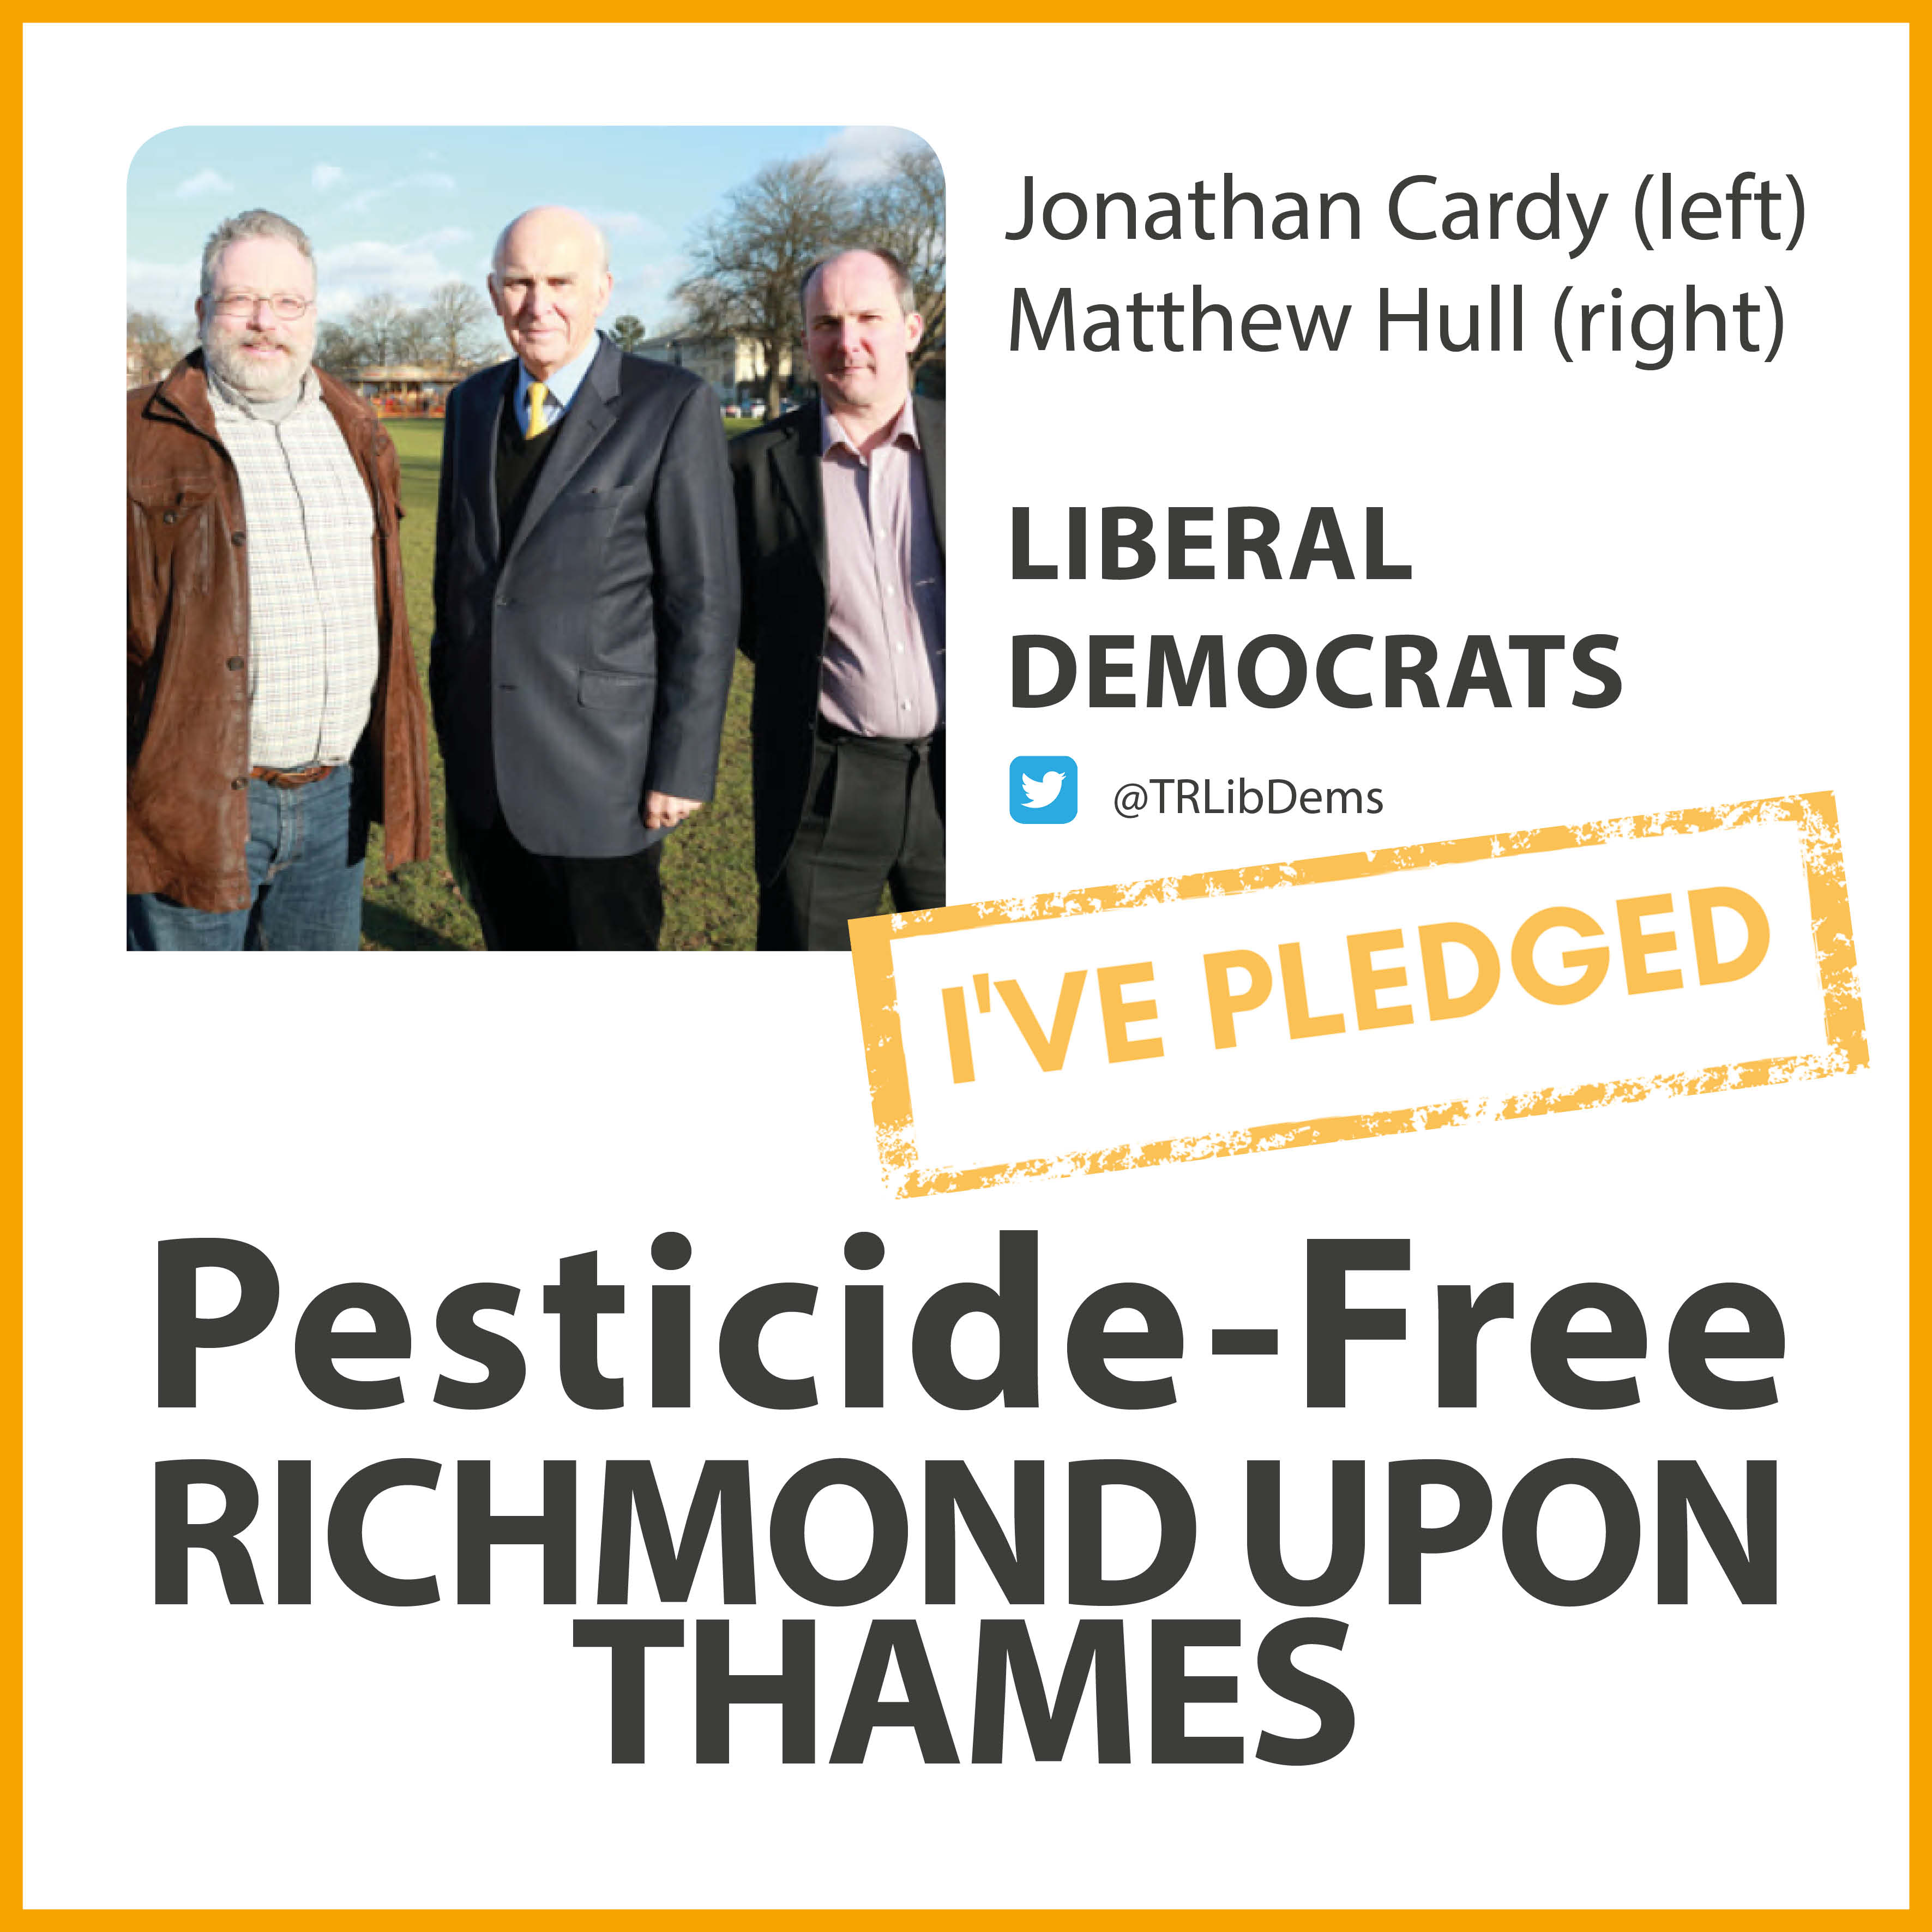 Fulwell and Hampton Hill Lib Dems have taken the pesticide-free pledge